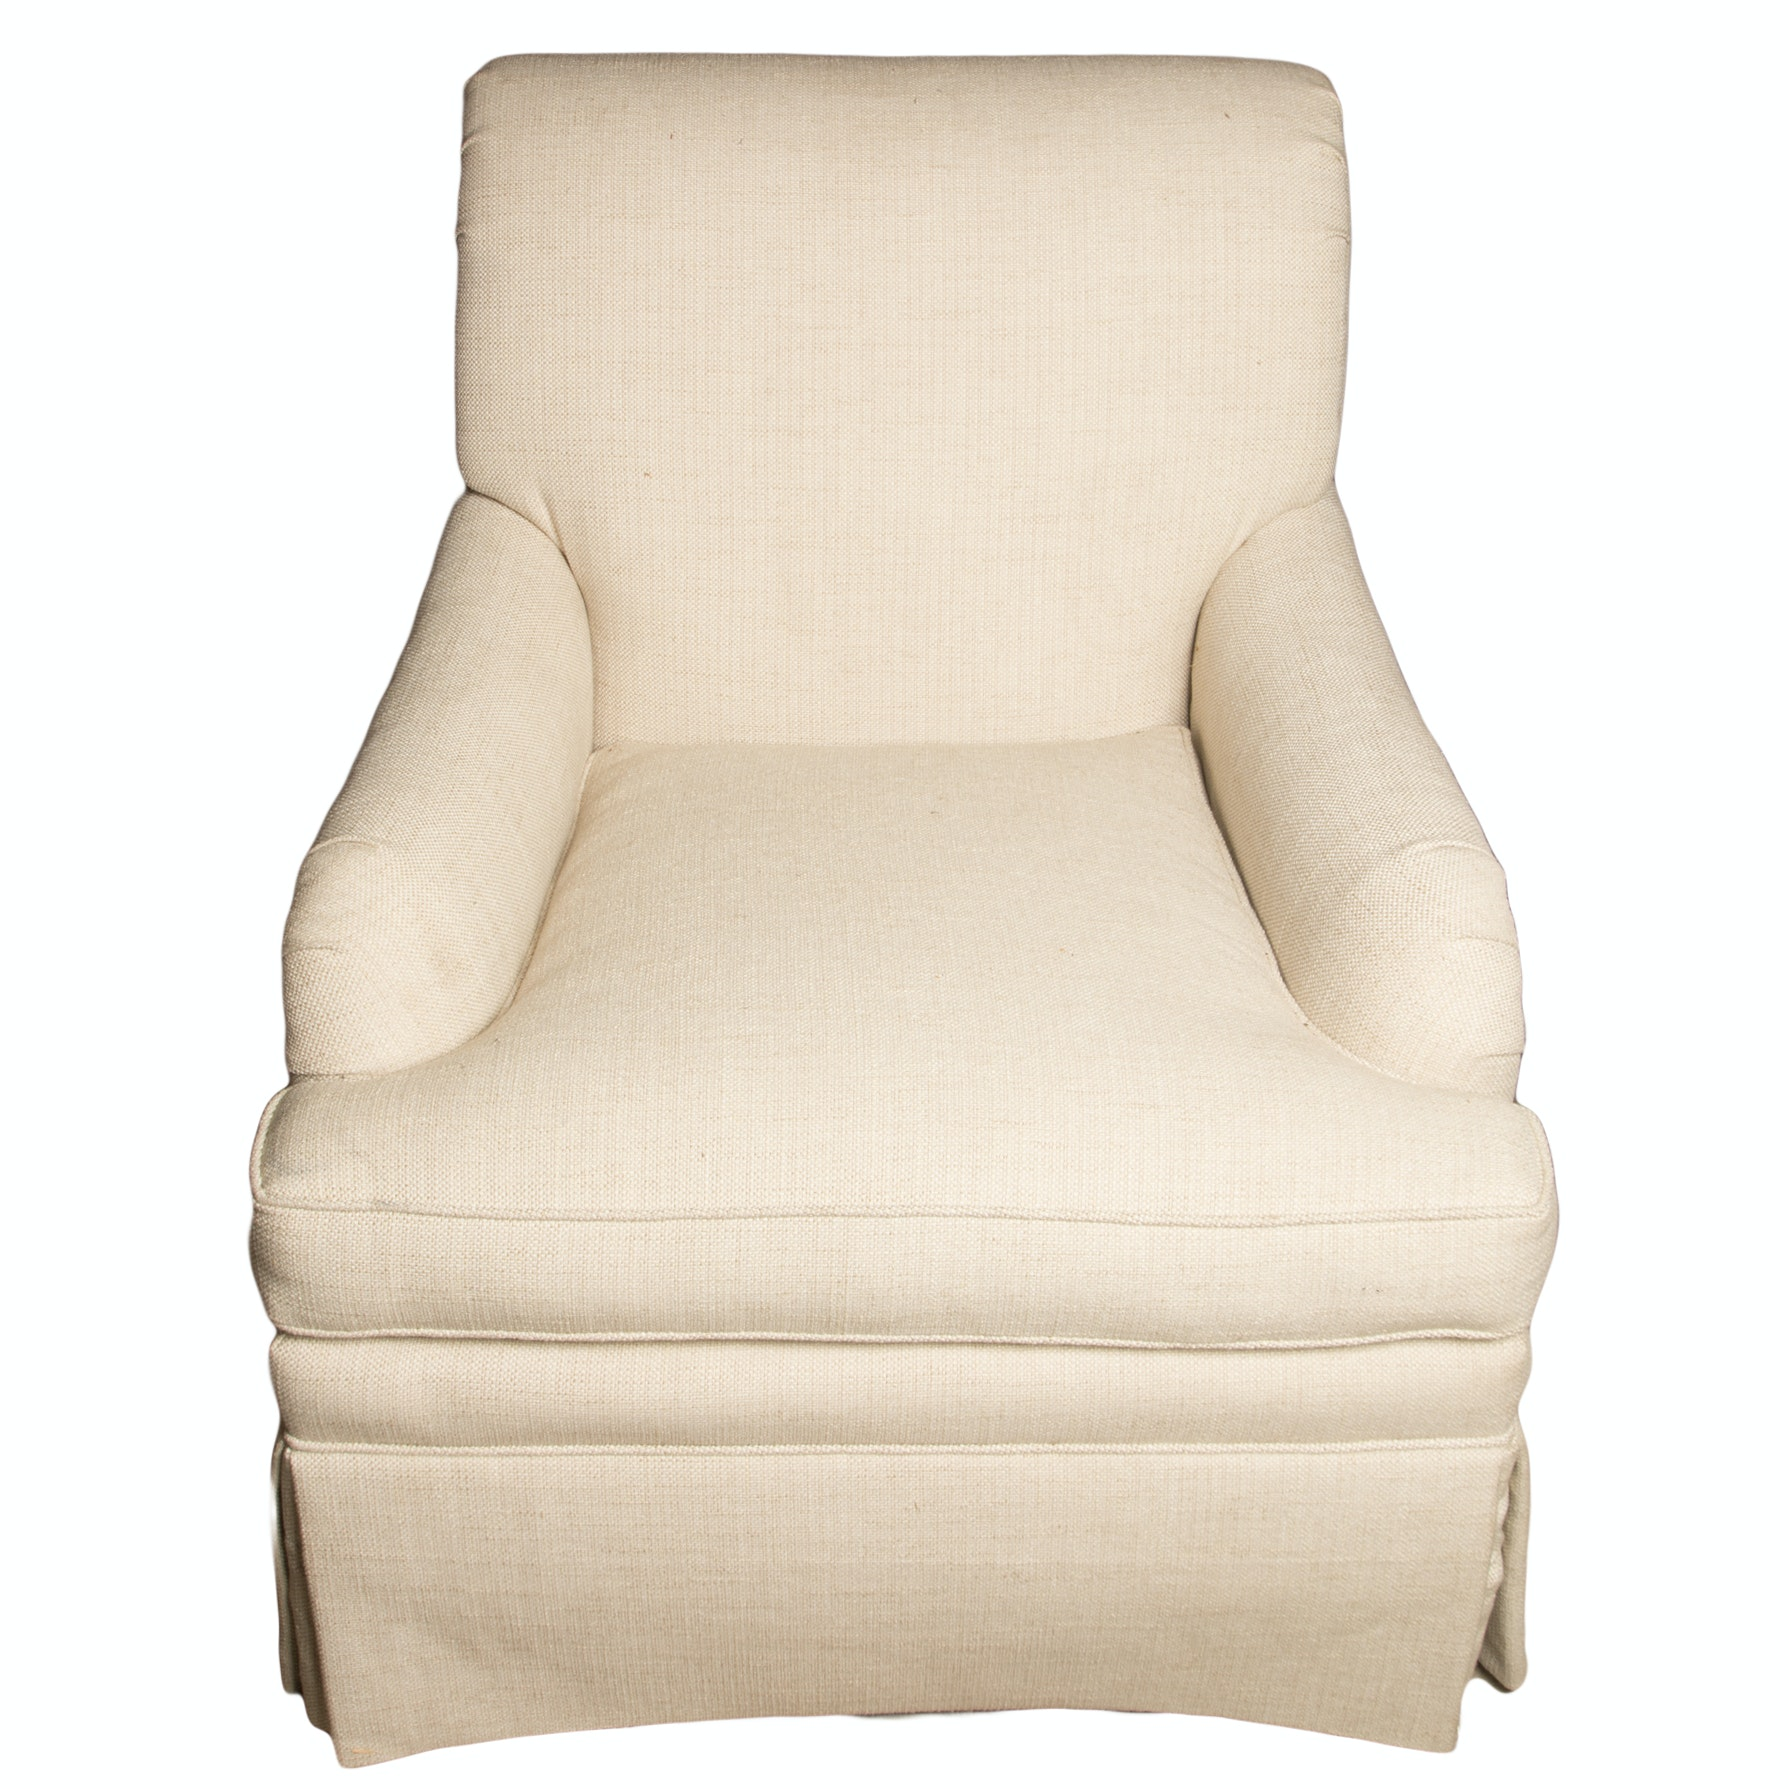 Upholstered Armchair by Design Services of Charlotte, Inc.